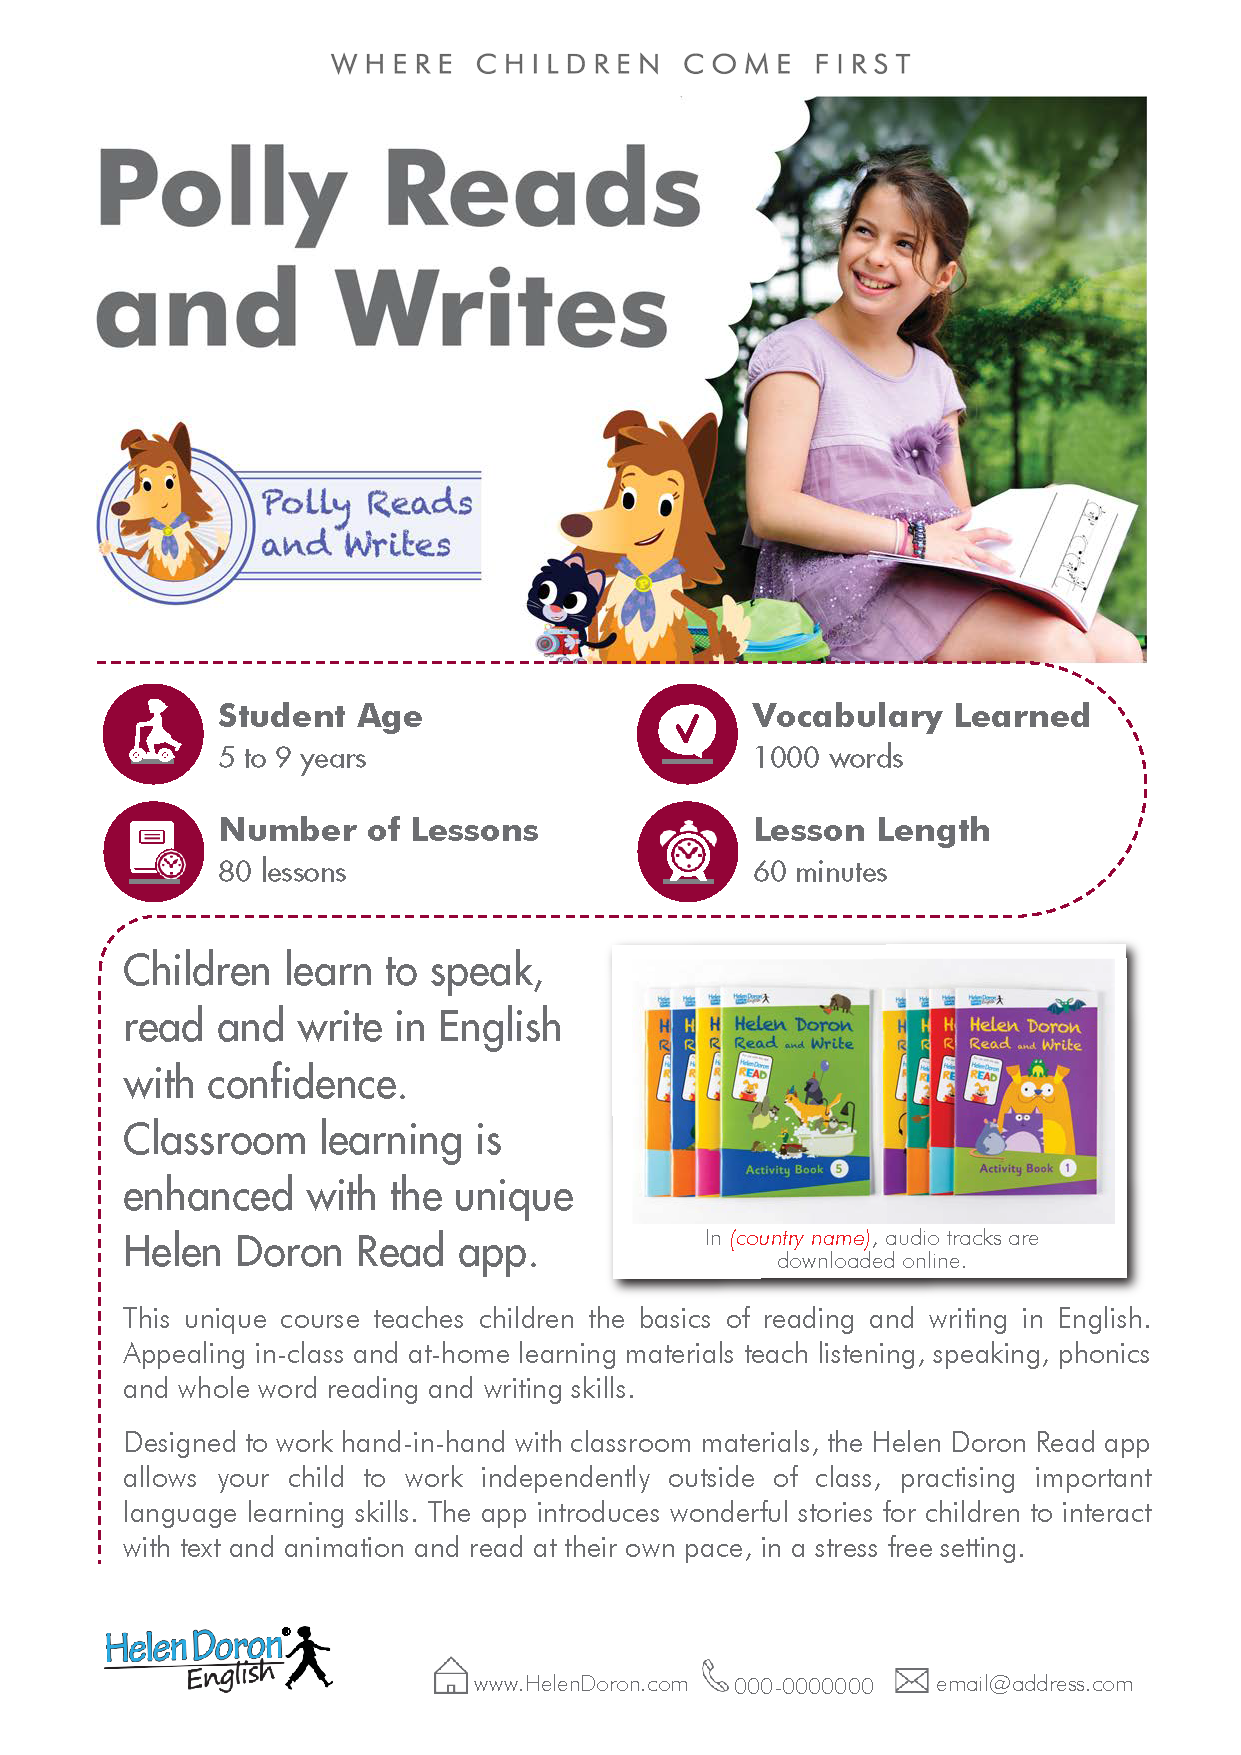 Download - Polly Reads and Writes